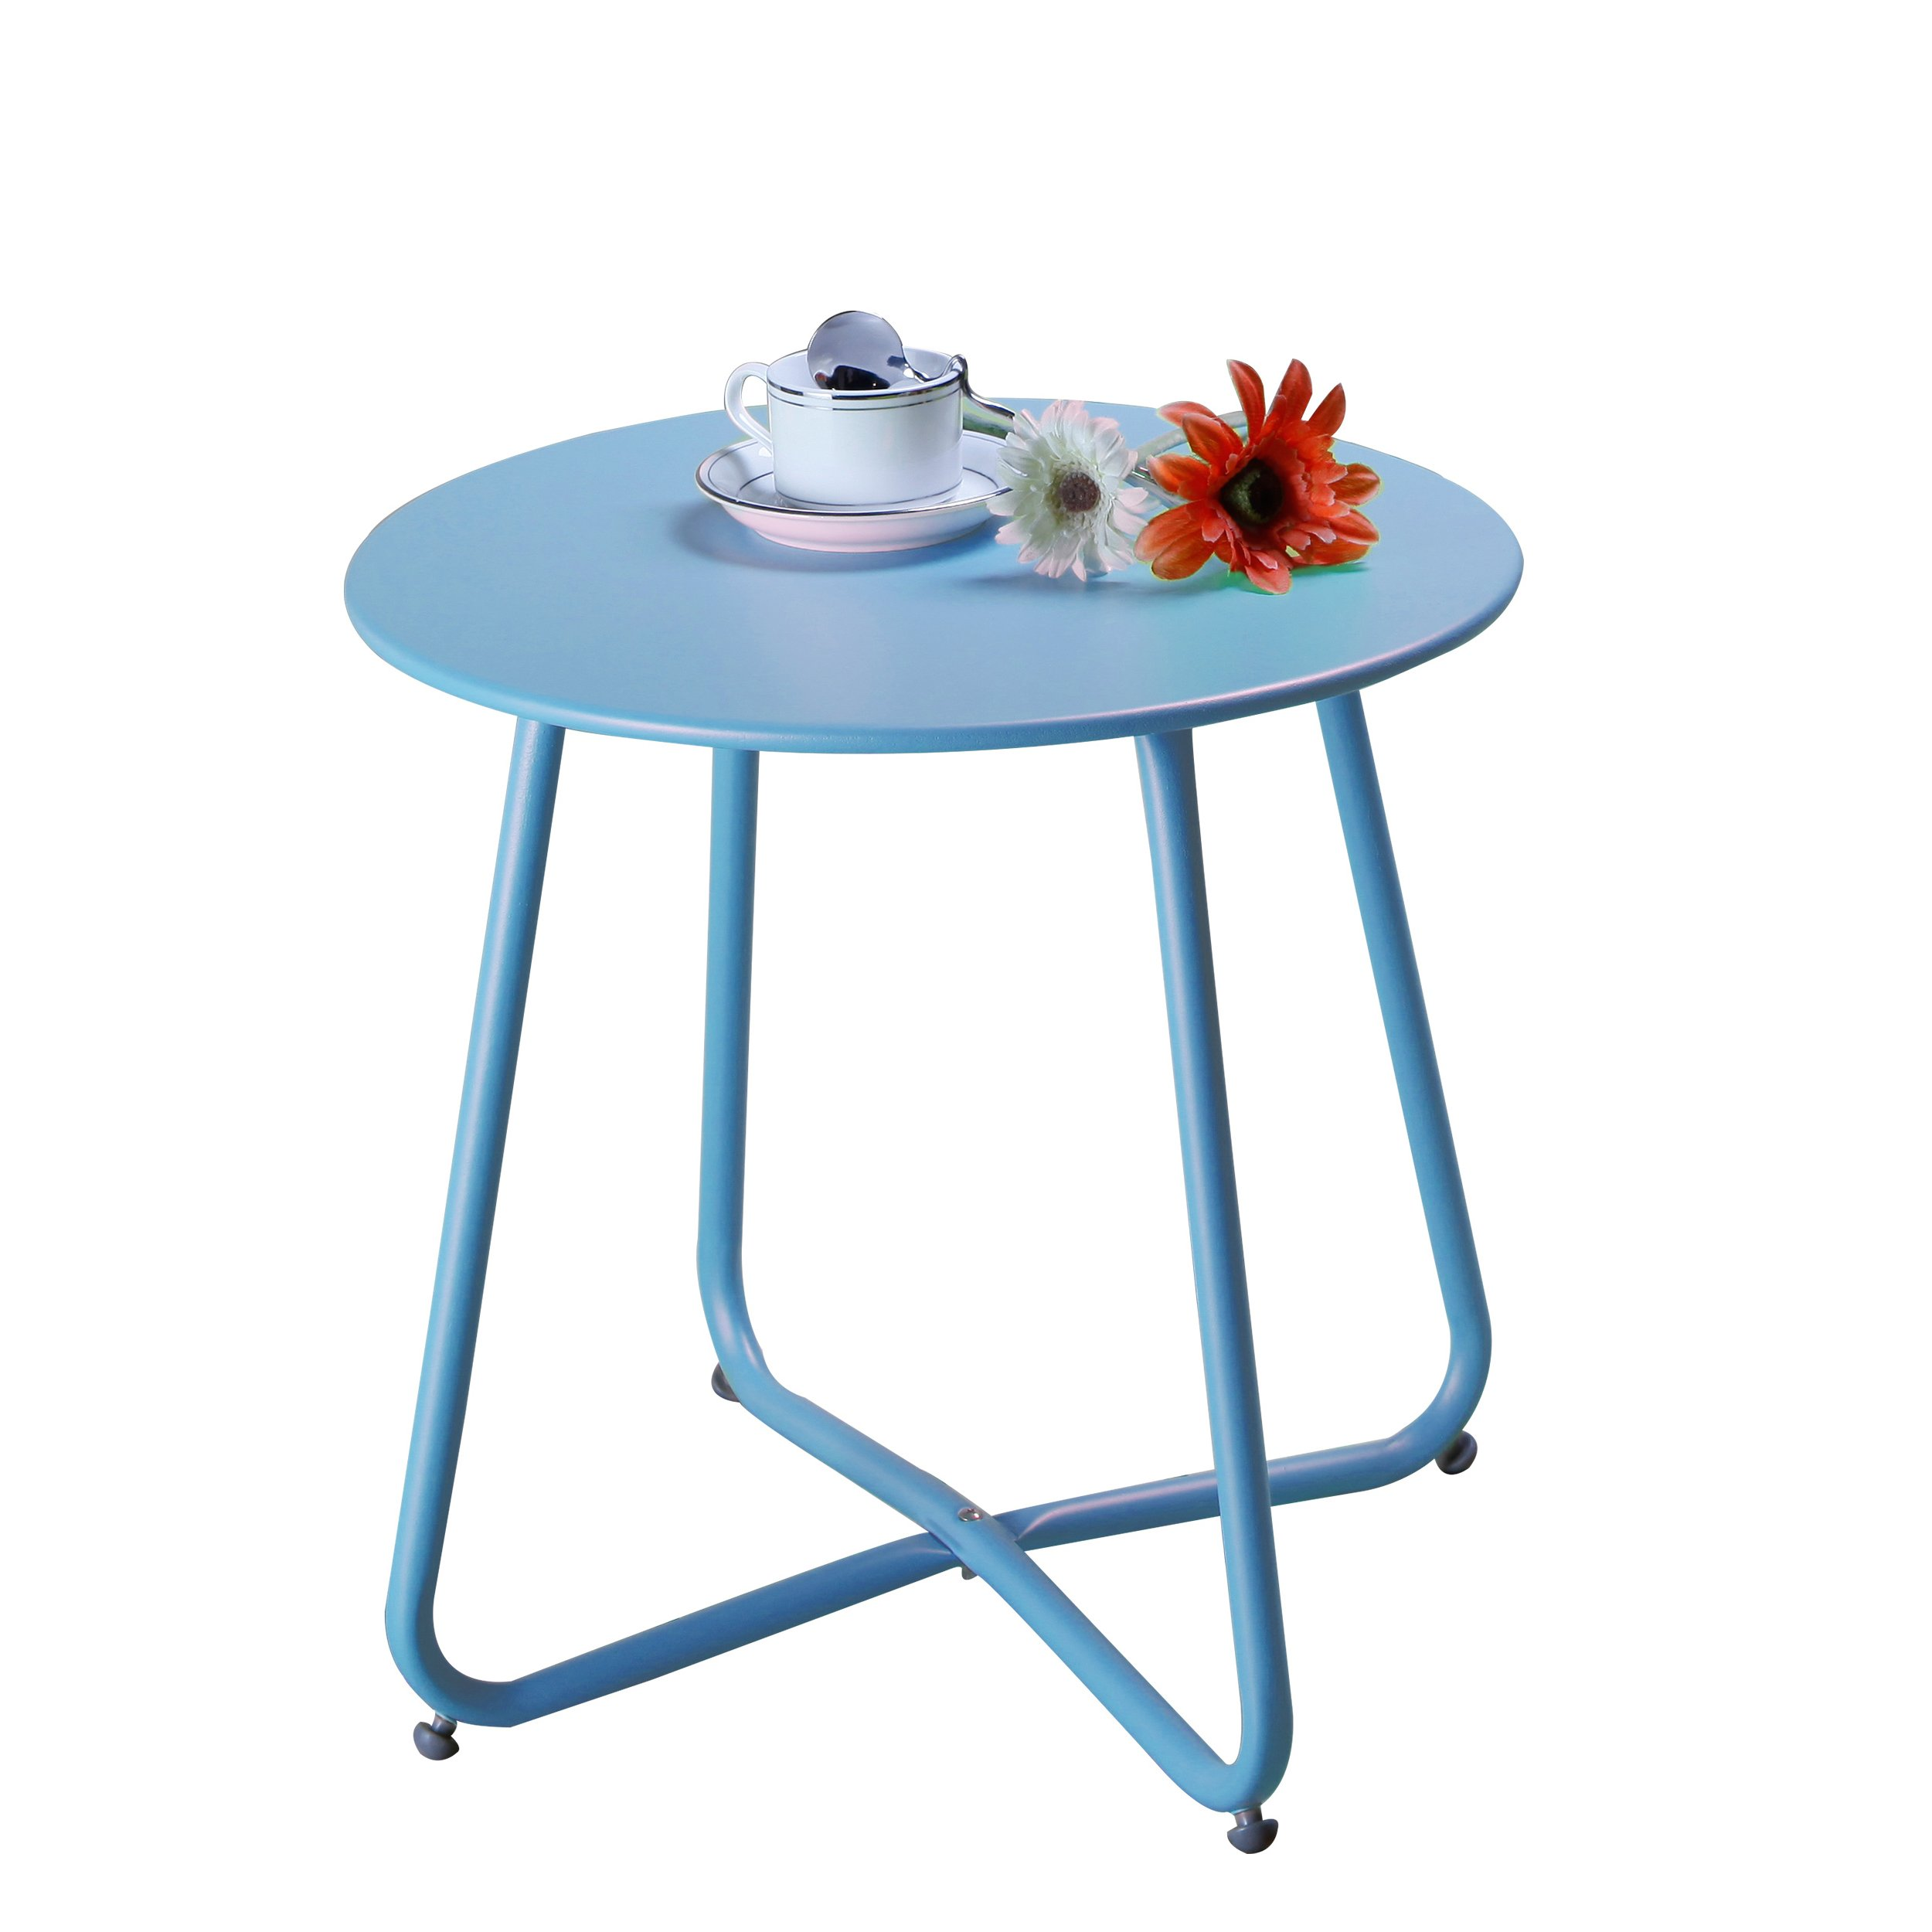 Grand patio Steel Patio Coffee Table, Weather Resistant Outdoor Side Table, Small Round End Tables, Blue